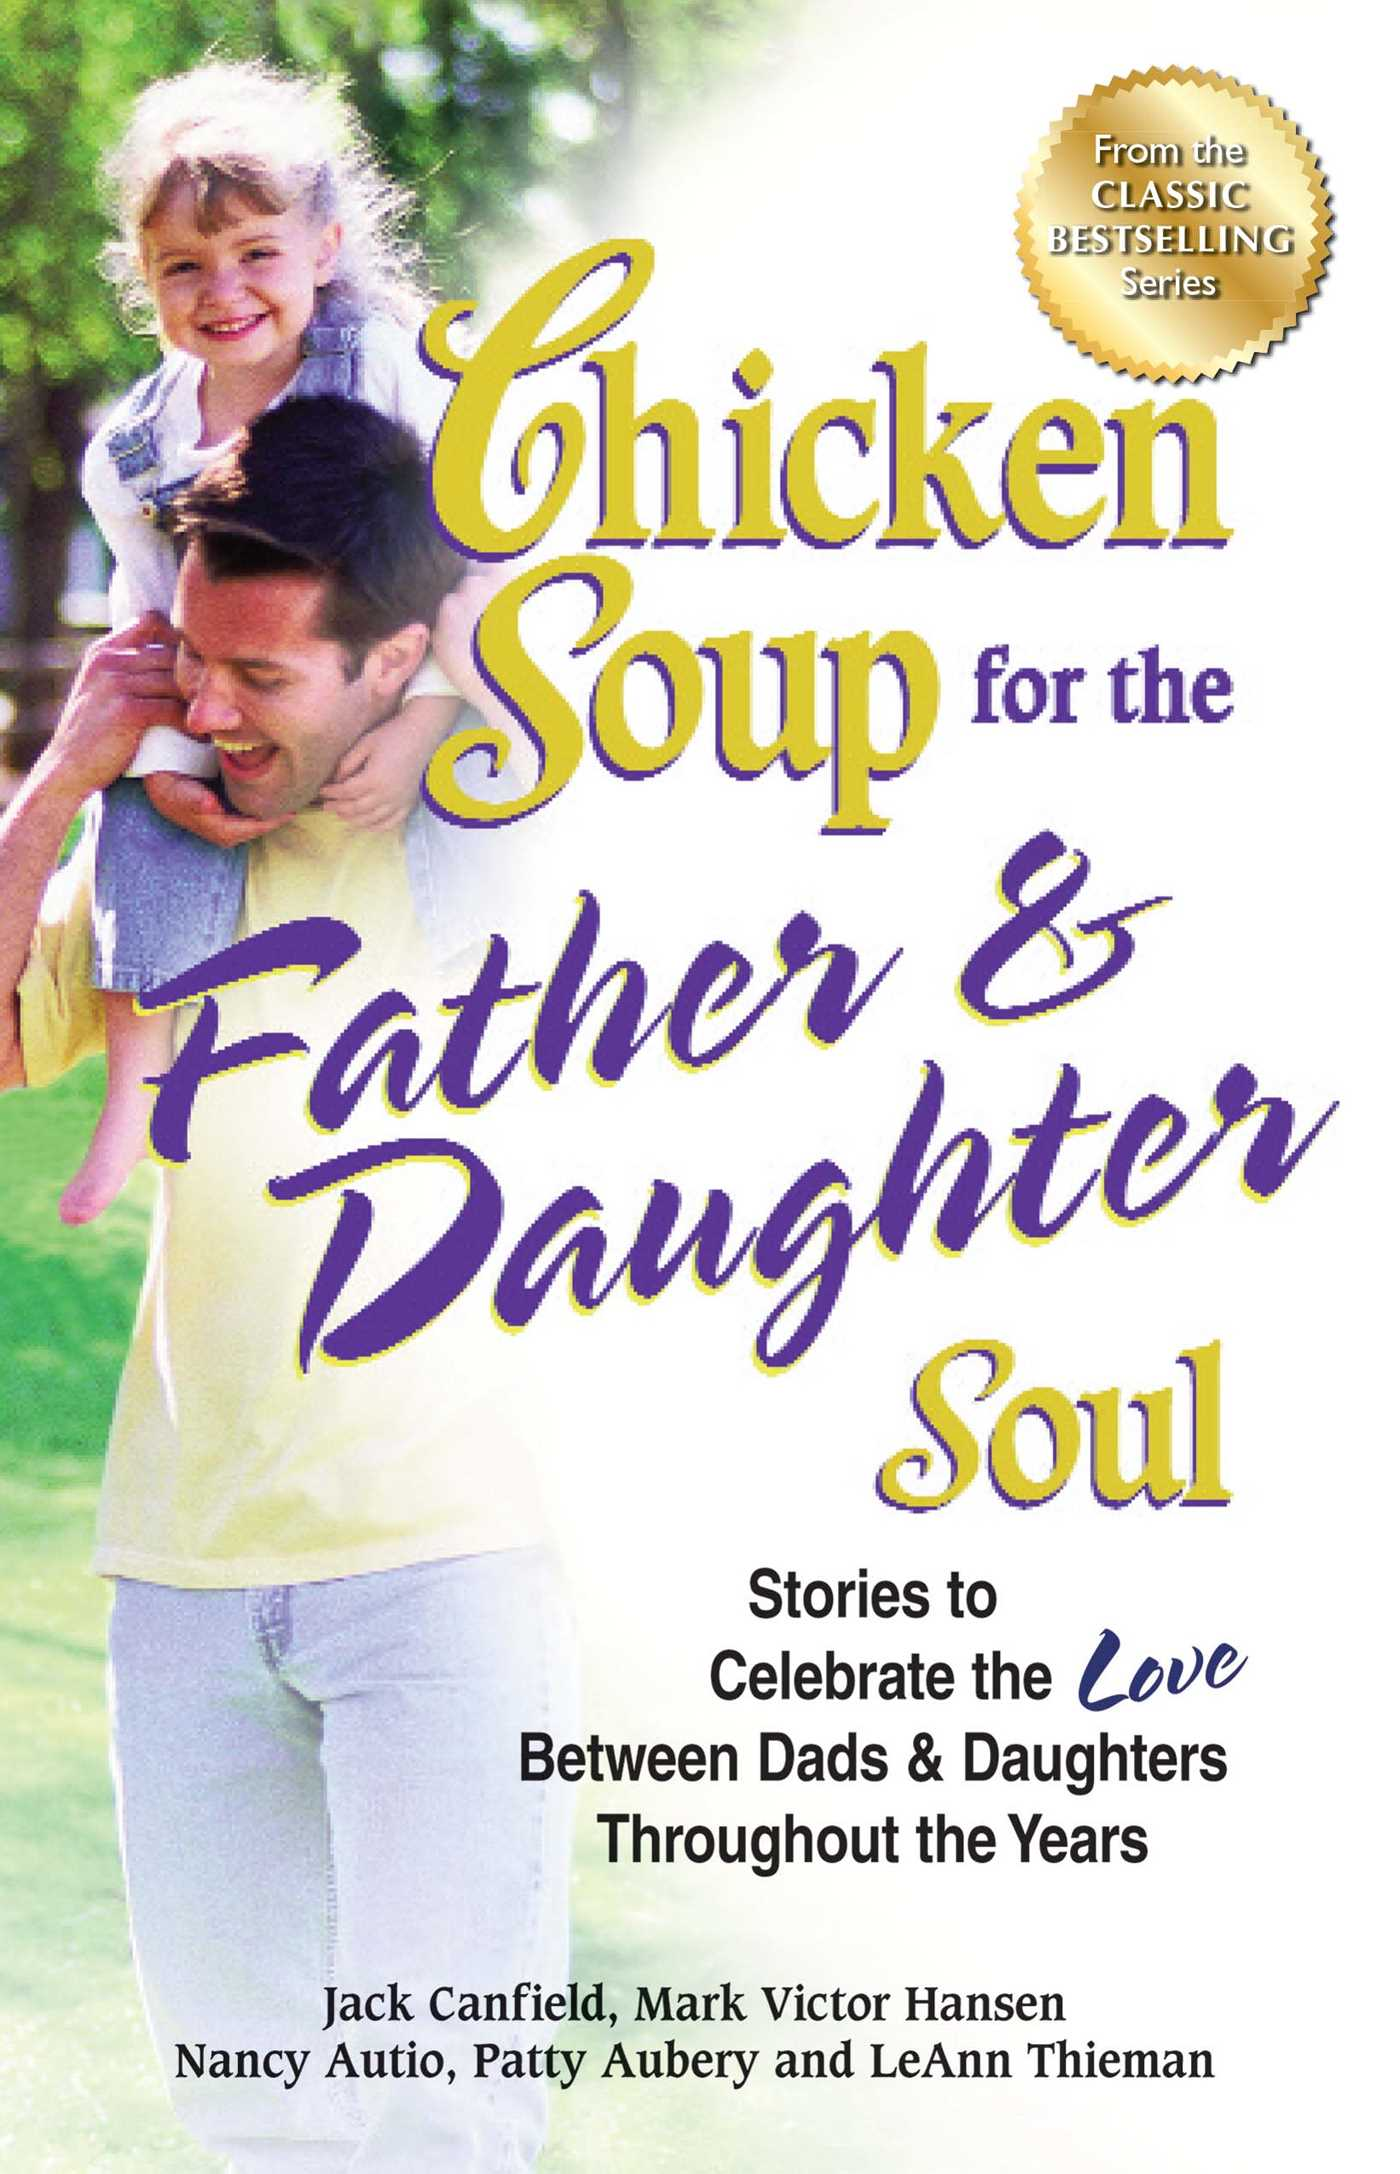 Chicken-soup-for-the-father-daughter-soul-9781623610265_hr